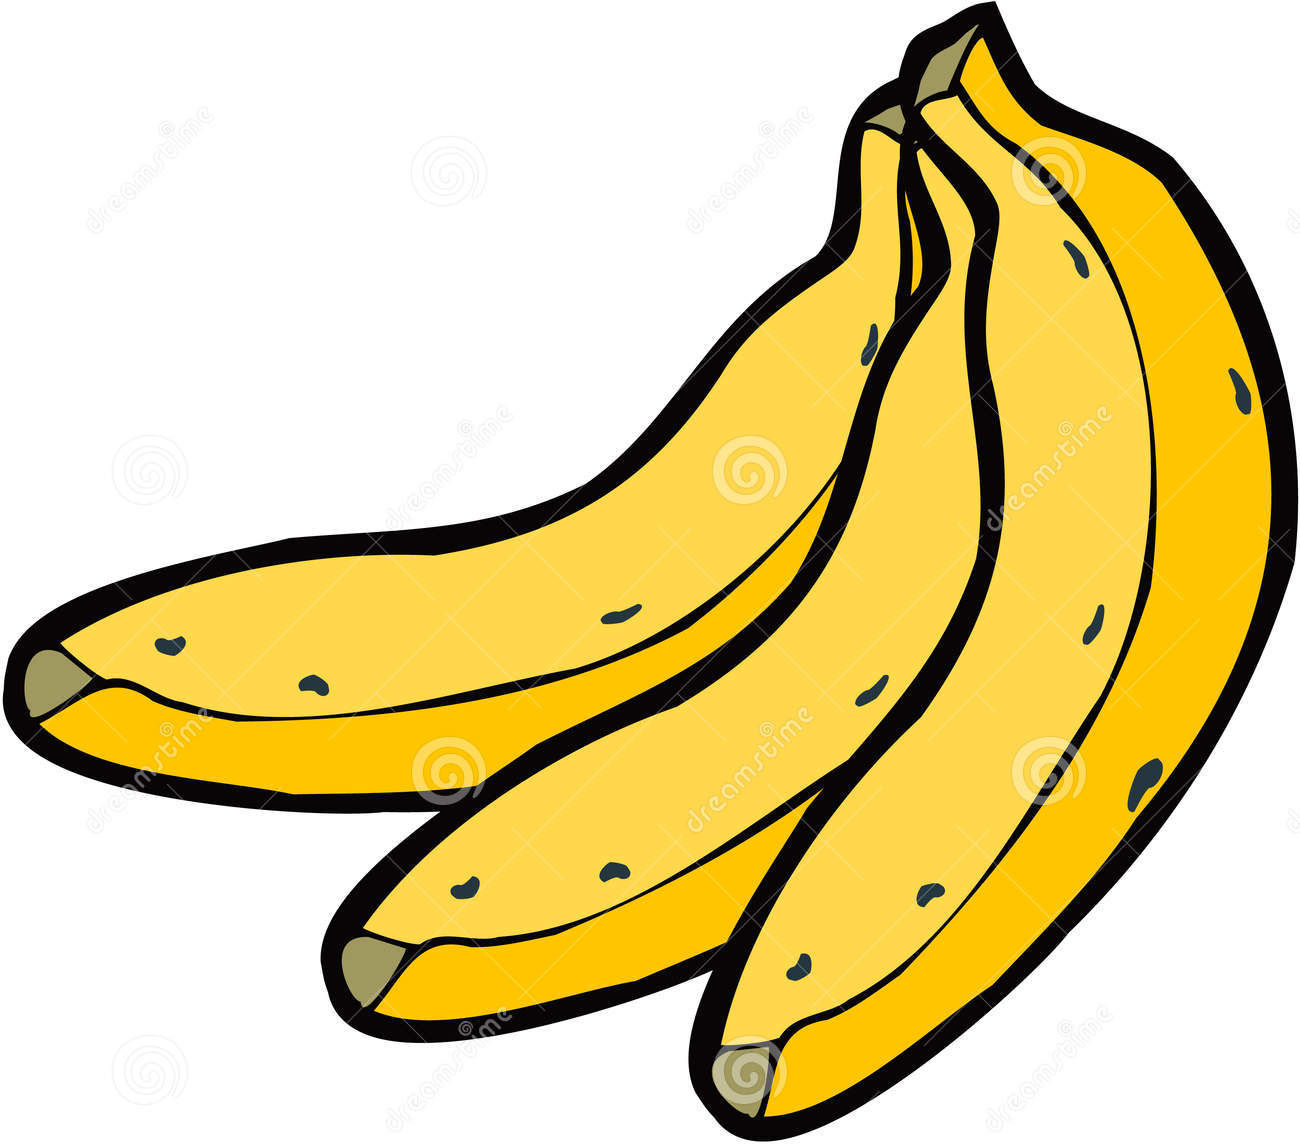 banana clipart black and white-banana clipart black and white-11